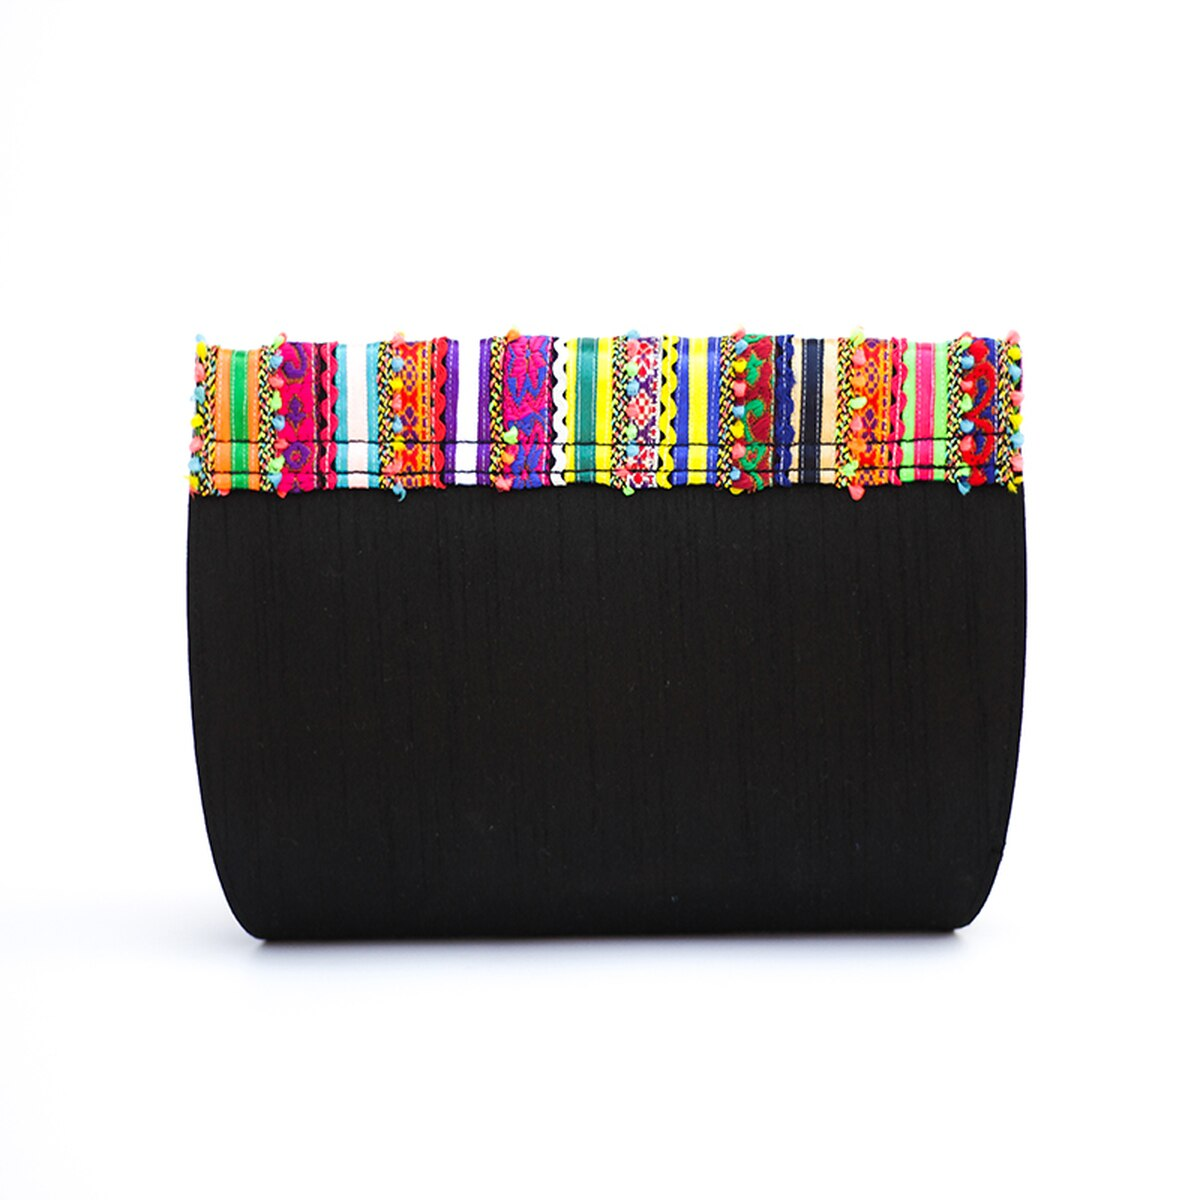 Black Rabari Vegan Clutch Bag from Siyana London